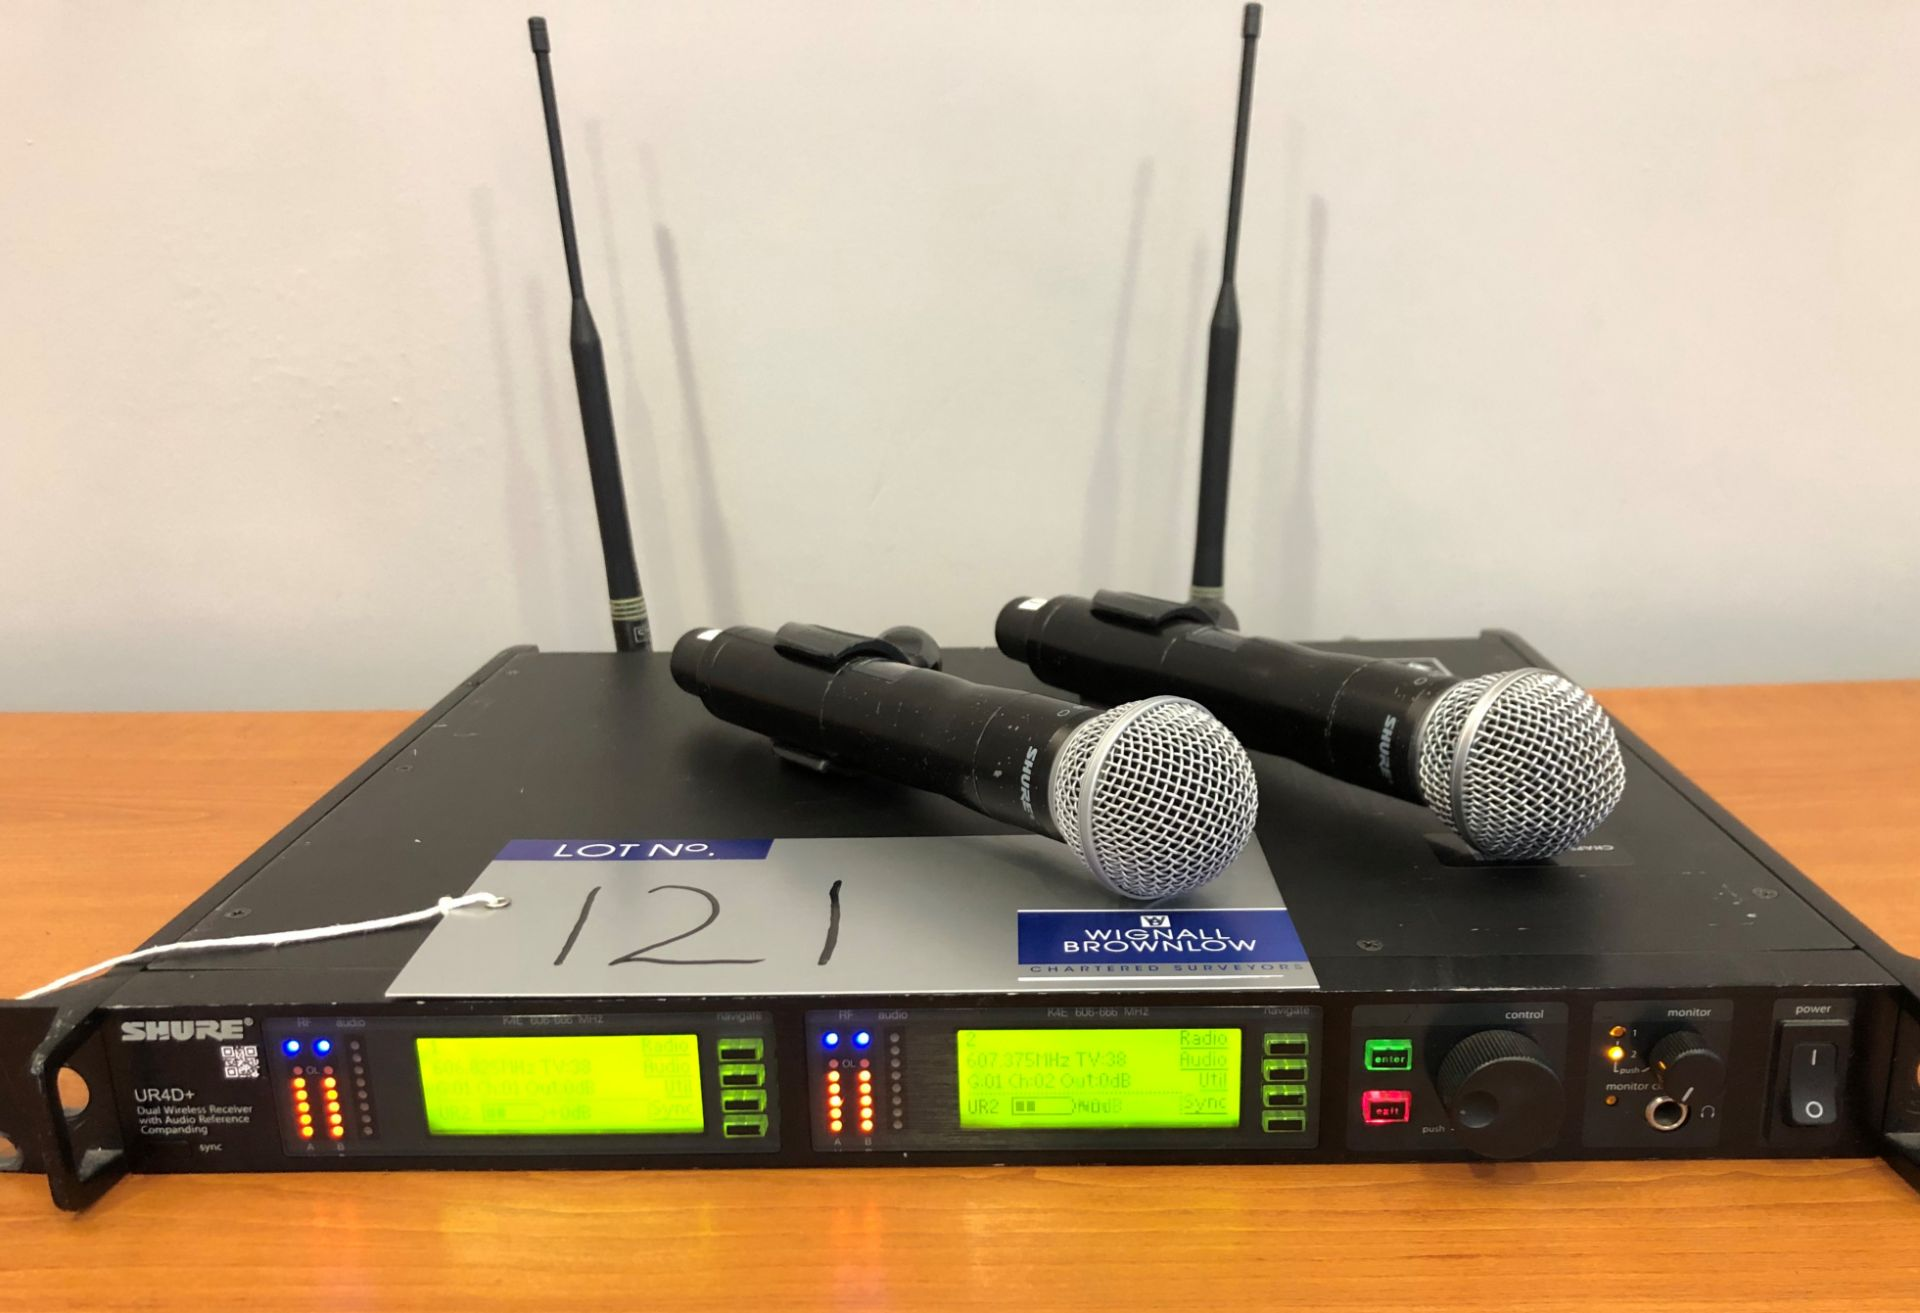 A Shure UR4D+ Dual Wireless Receiver with Audio Reference Companding in K4E, 606-666MHz with 2-UR2